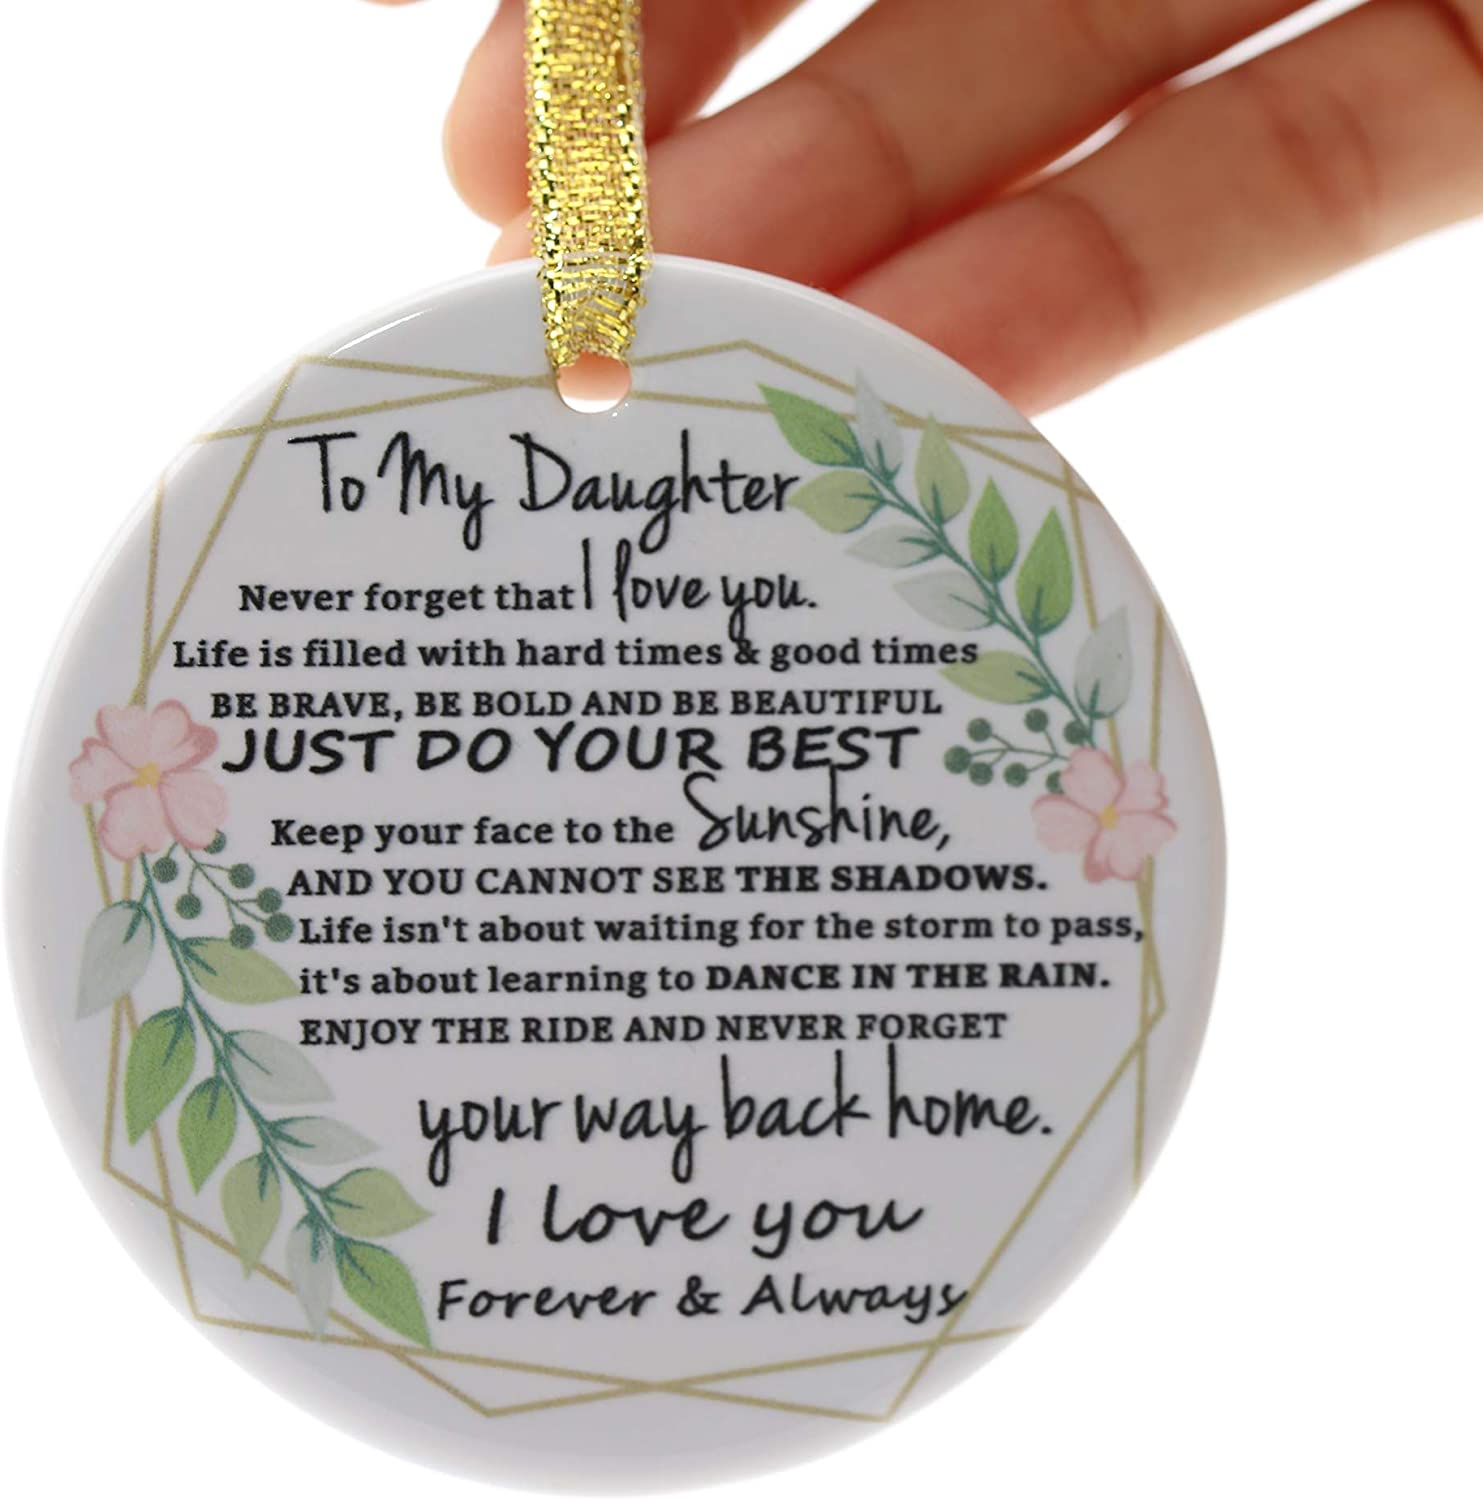 Babys First Christmas Ornament 2020 Two-Side Printed Ceramic Christmas Ornament for New Mom Holiday Keepsake Gift for New Parents